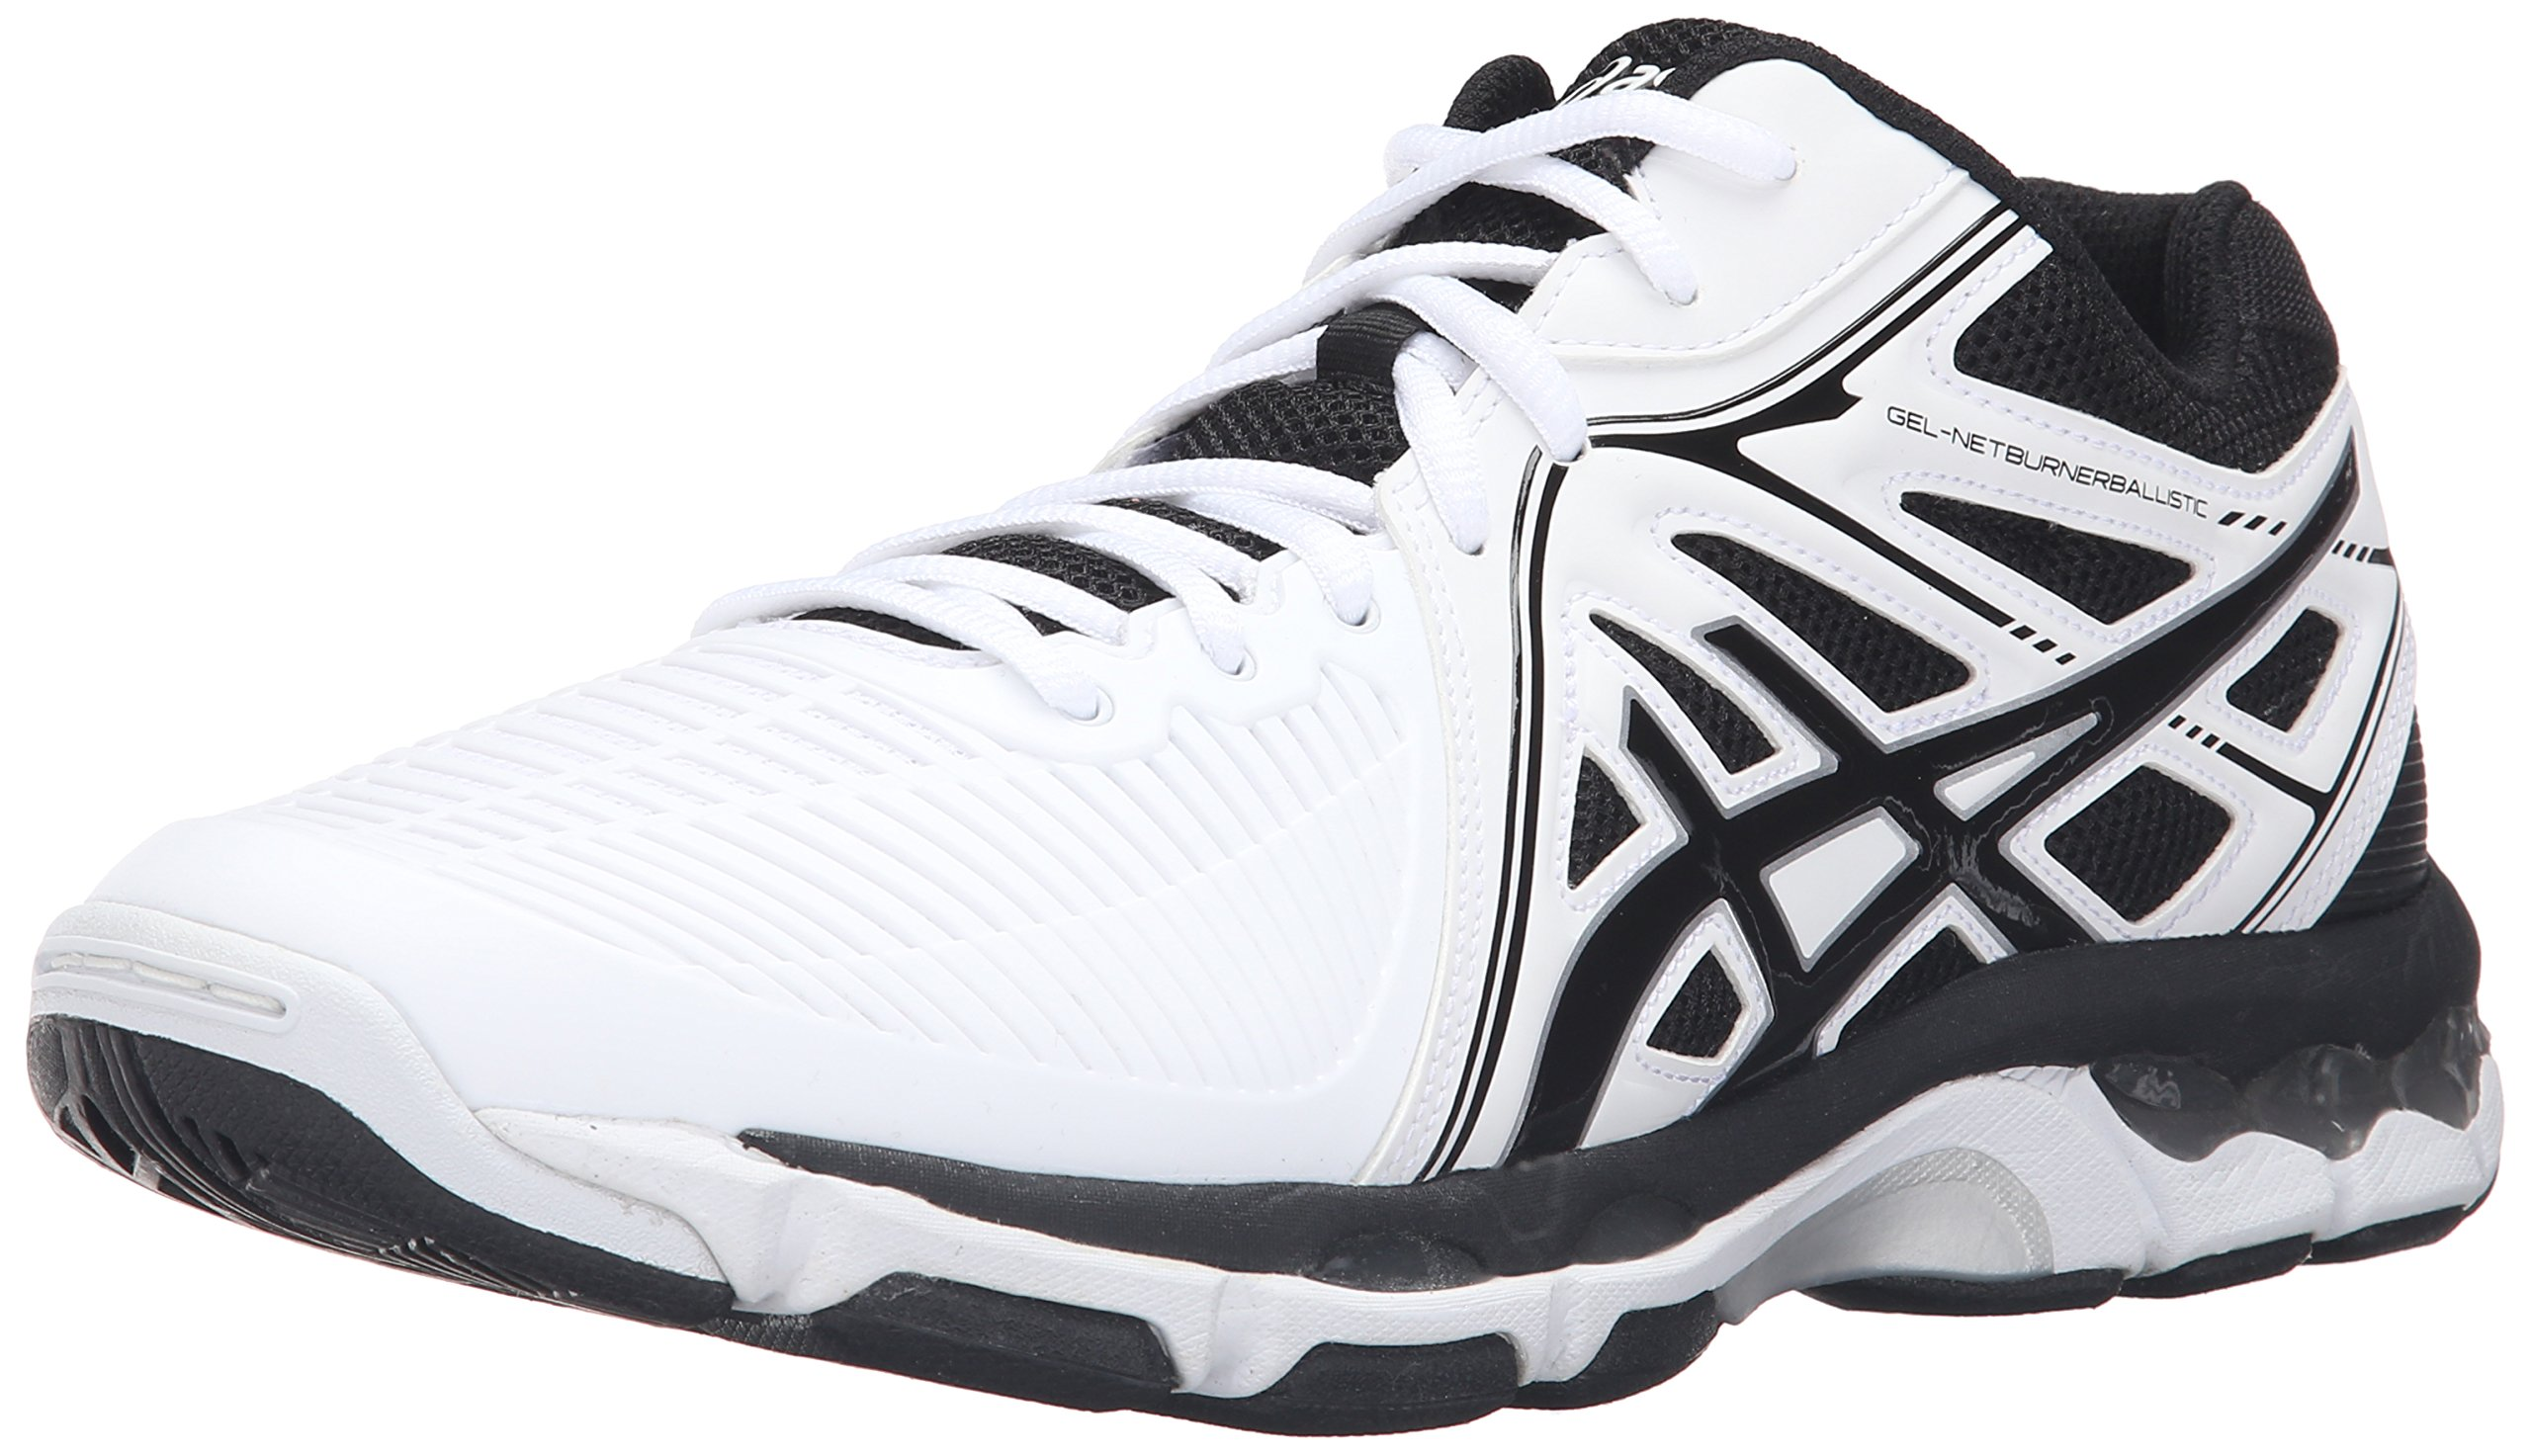 ASICS Men's Gel-Netburner Ballistic MT Volleyball Shoe, White/Black/Silver, 6 M US